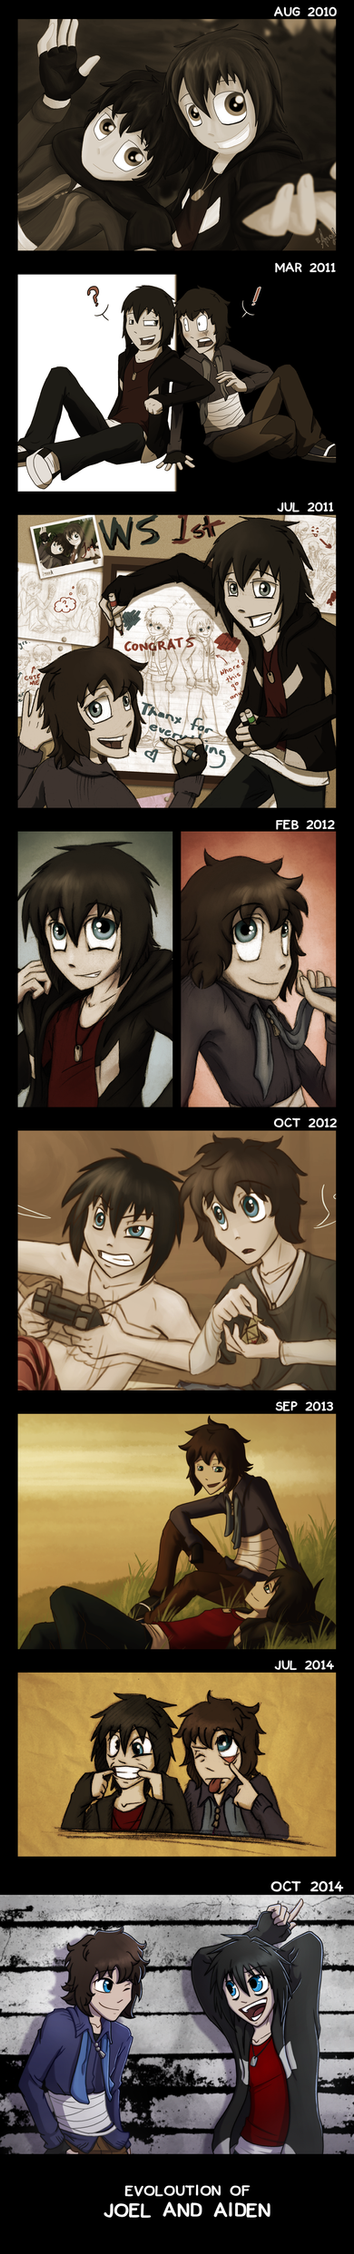 The twins over the years by AbnormallyNice